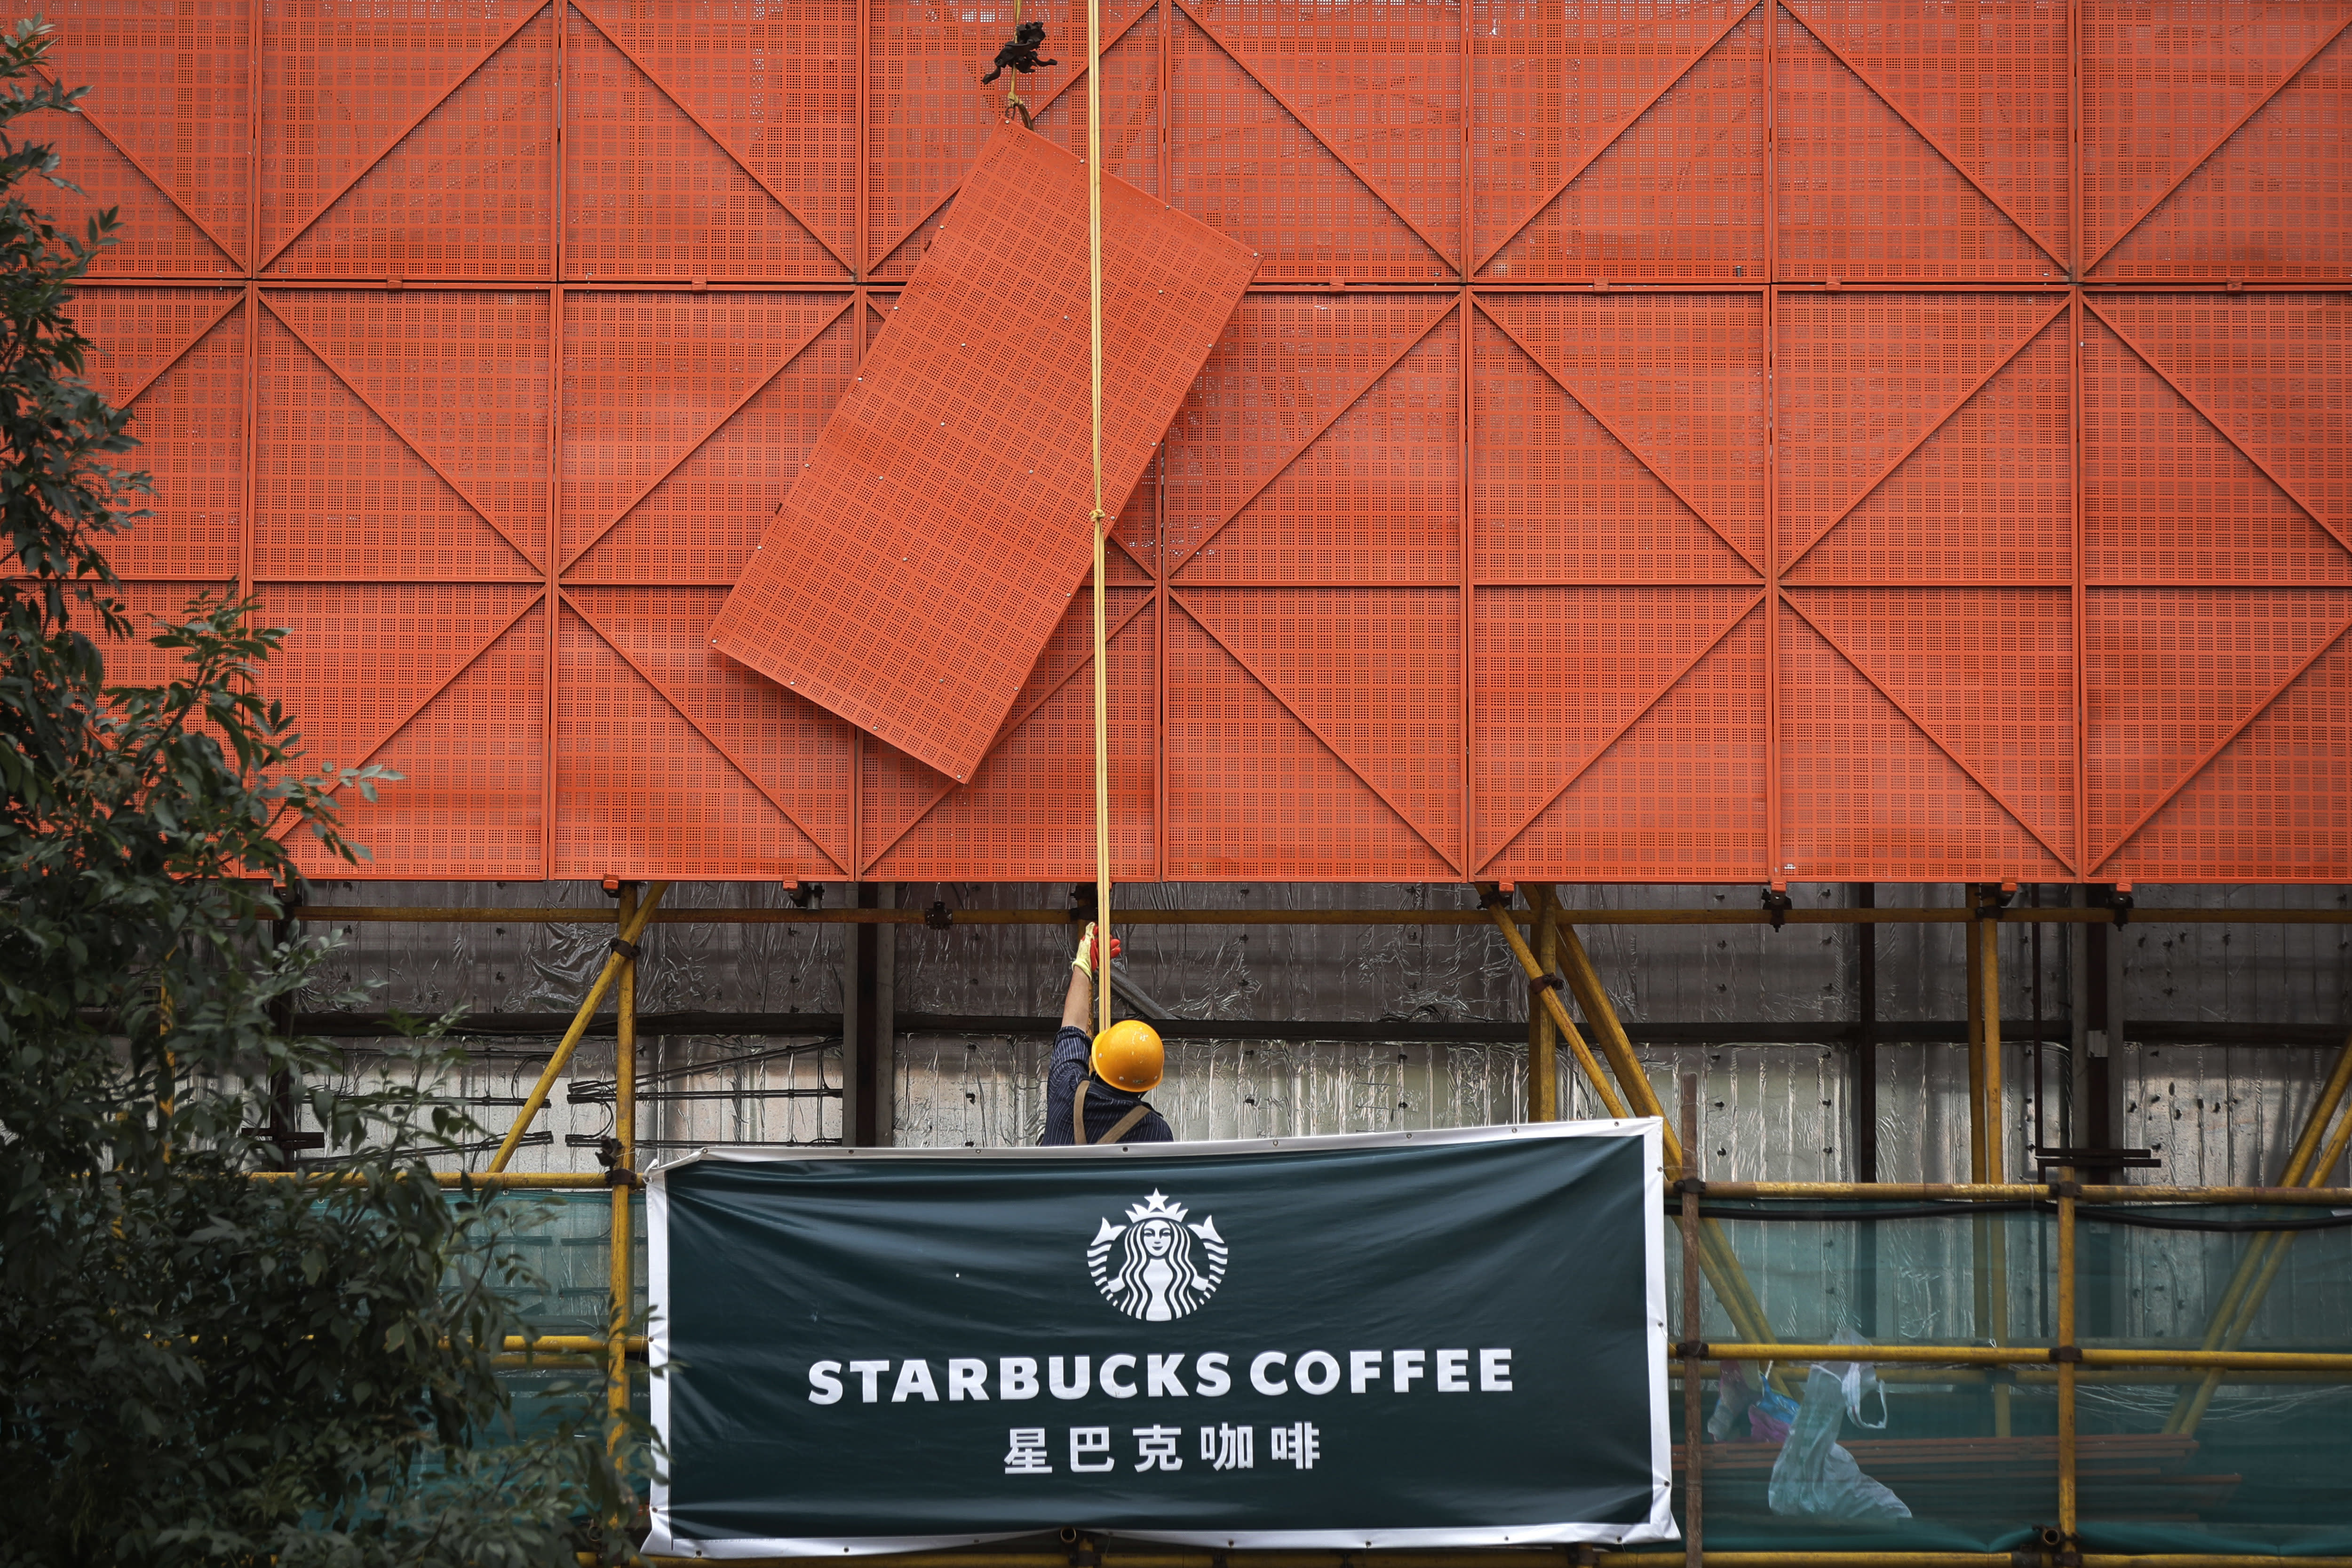 FILE - In an Aug. 14, 2018 file photo, a worker lifts a protection steel frame on a Starbucks cafe banner hanging outside a shopping mall under renovation in Beijing. A report out Monday, May 11, 2020, found that China's direct investment in the United States dropped from $5.4 billion in 2018 to $5 billion last year, the lowest level since the recession year of 2009. (AP Photo/Andy Wong, File)